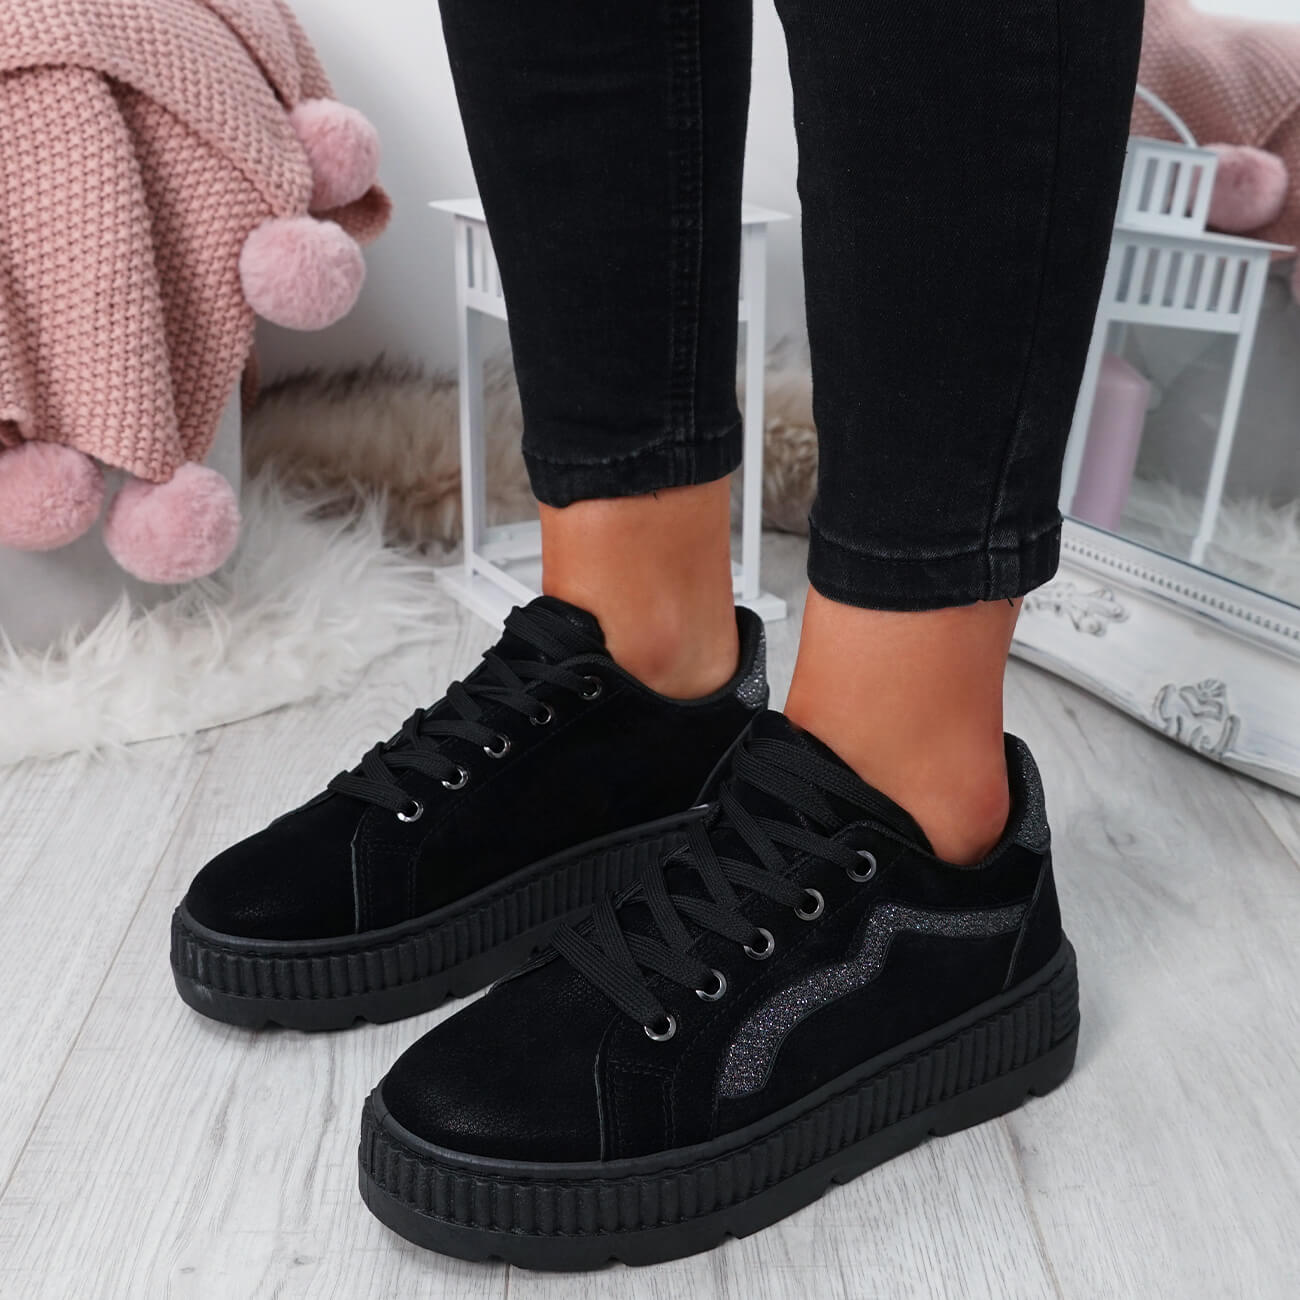 WOMENS-LADIES-LACE-UP-PLATFORM-TRAINERS-PLIMSOLL-SKATE-SNEAKERS-SHOES-SIZE thumbnail 7